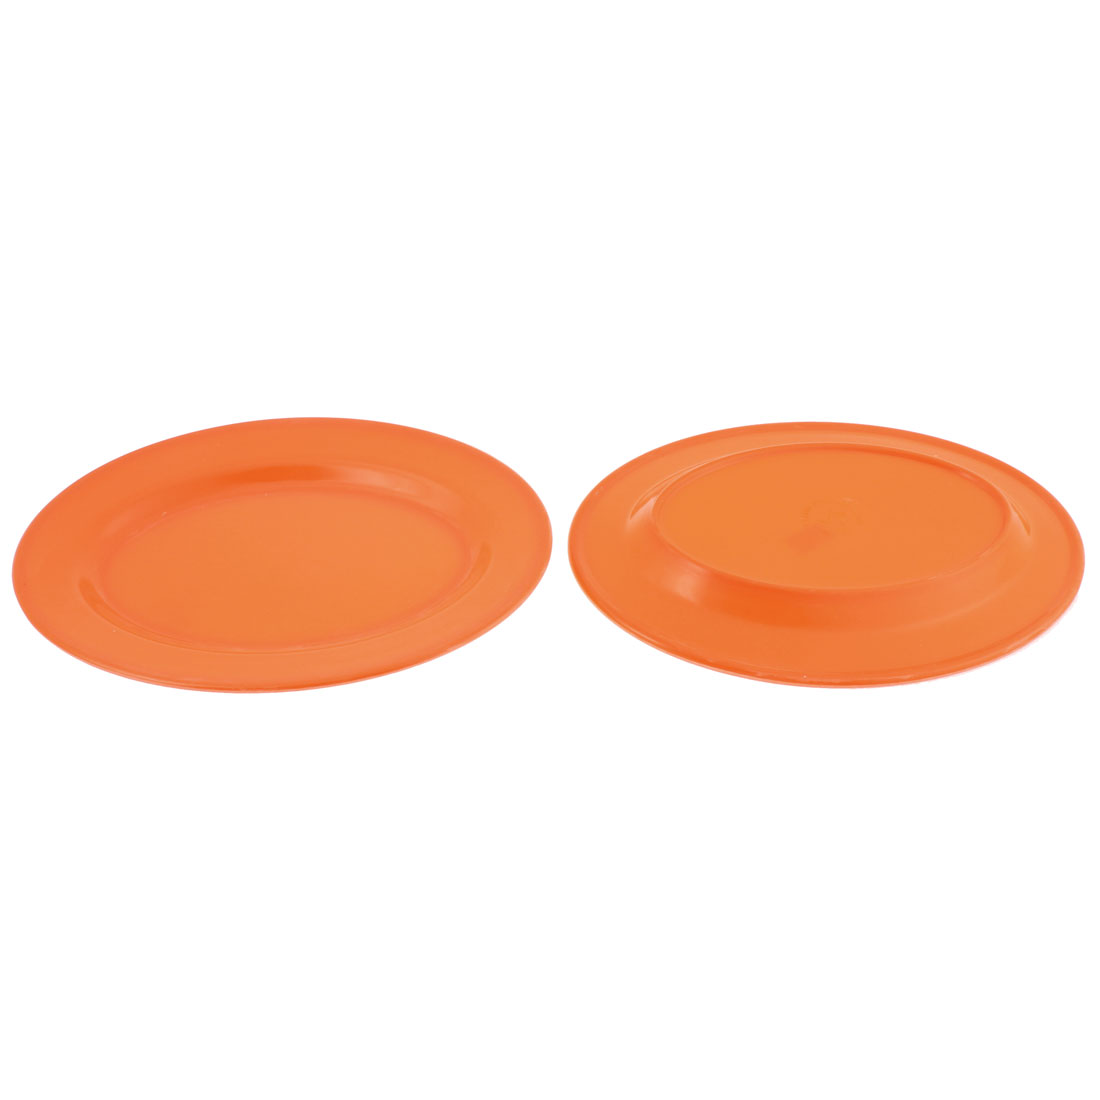 Kitchen Restaurant Plastic Oval Shaped Food Dish Plate Tray Orange 2pcs